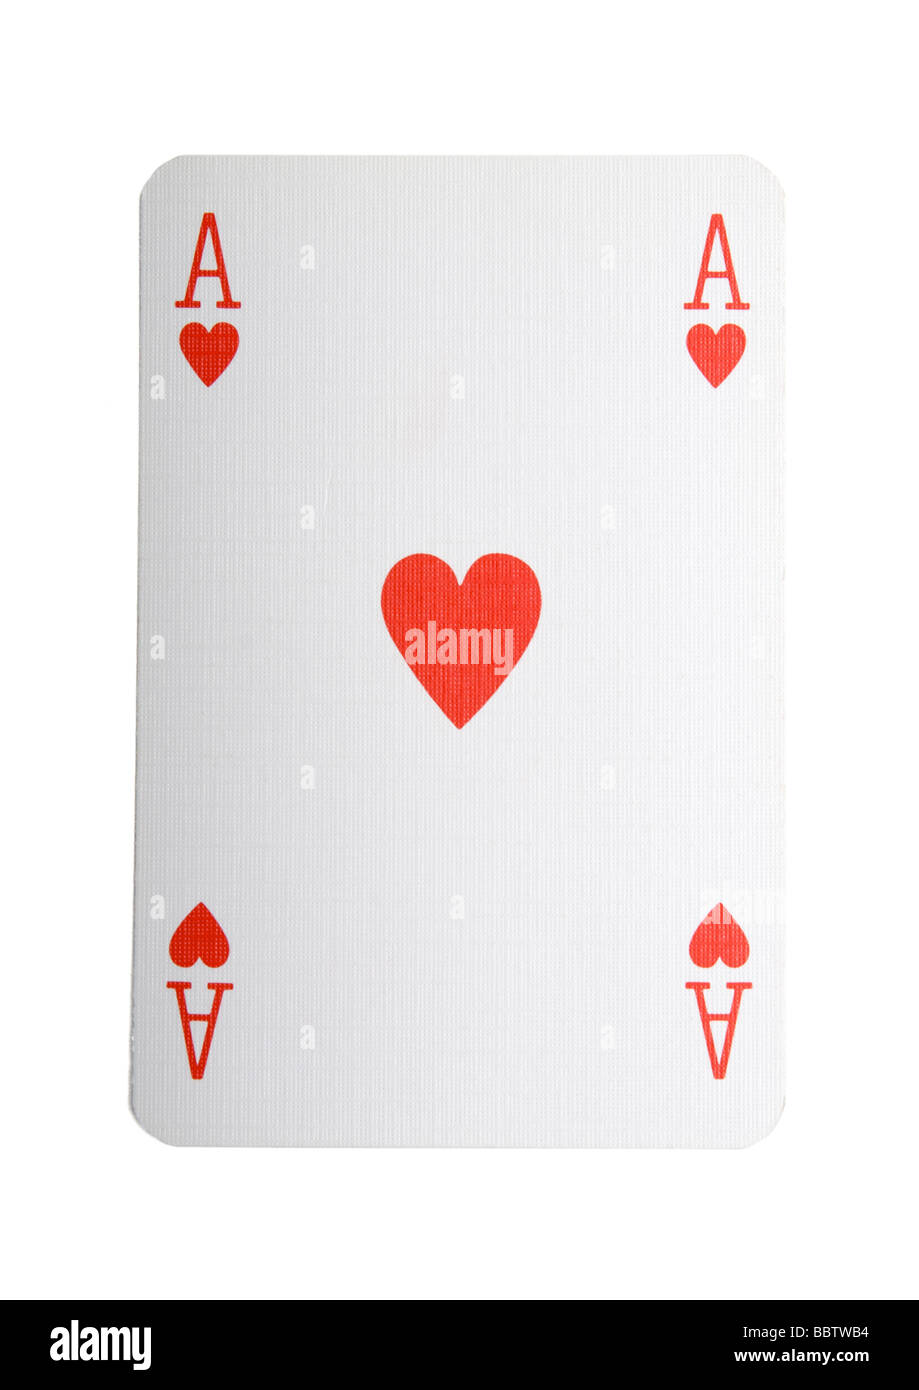 Ace of hearts play card on white background - Stock Image